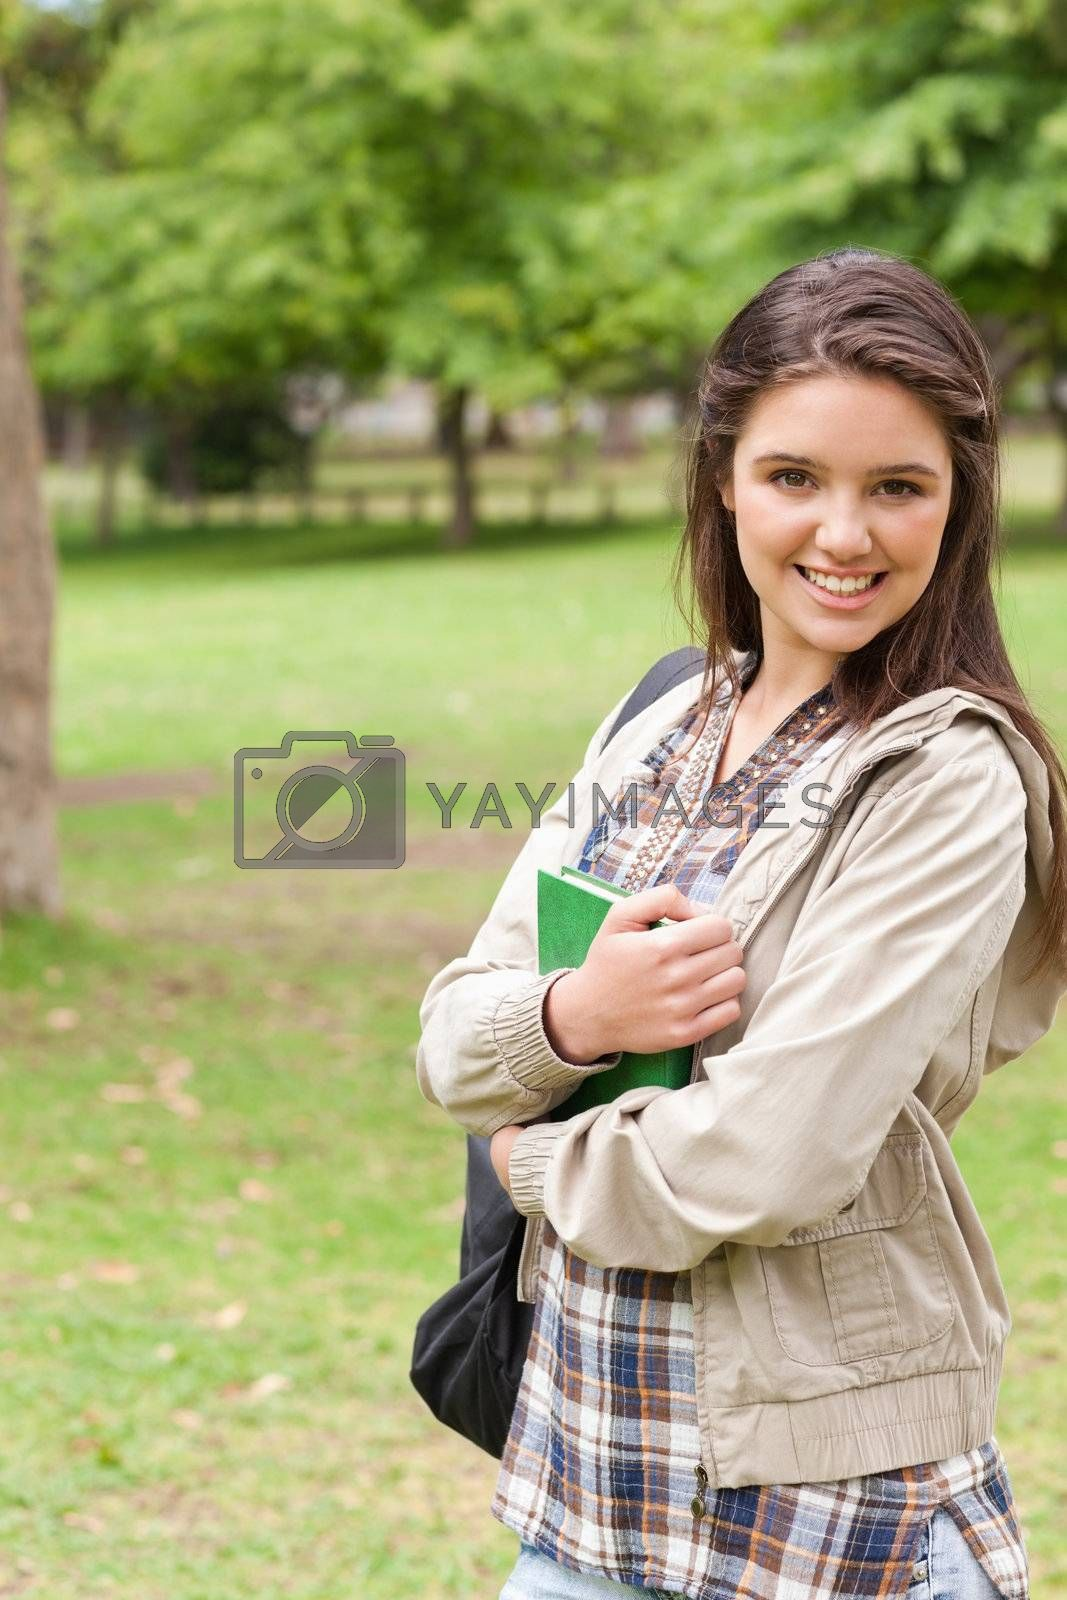 Portrait of a young smiling student holding textbook while posing in a park